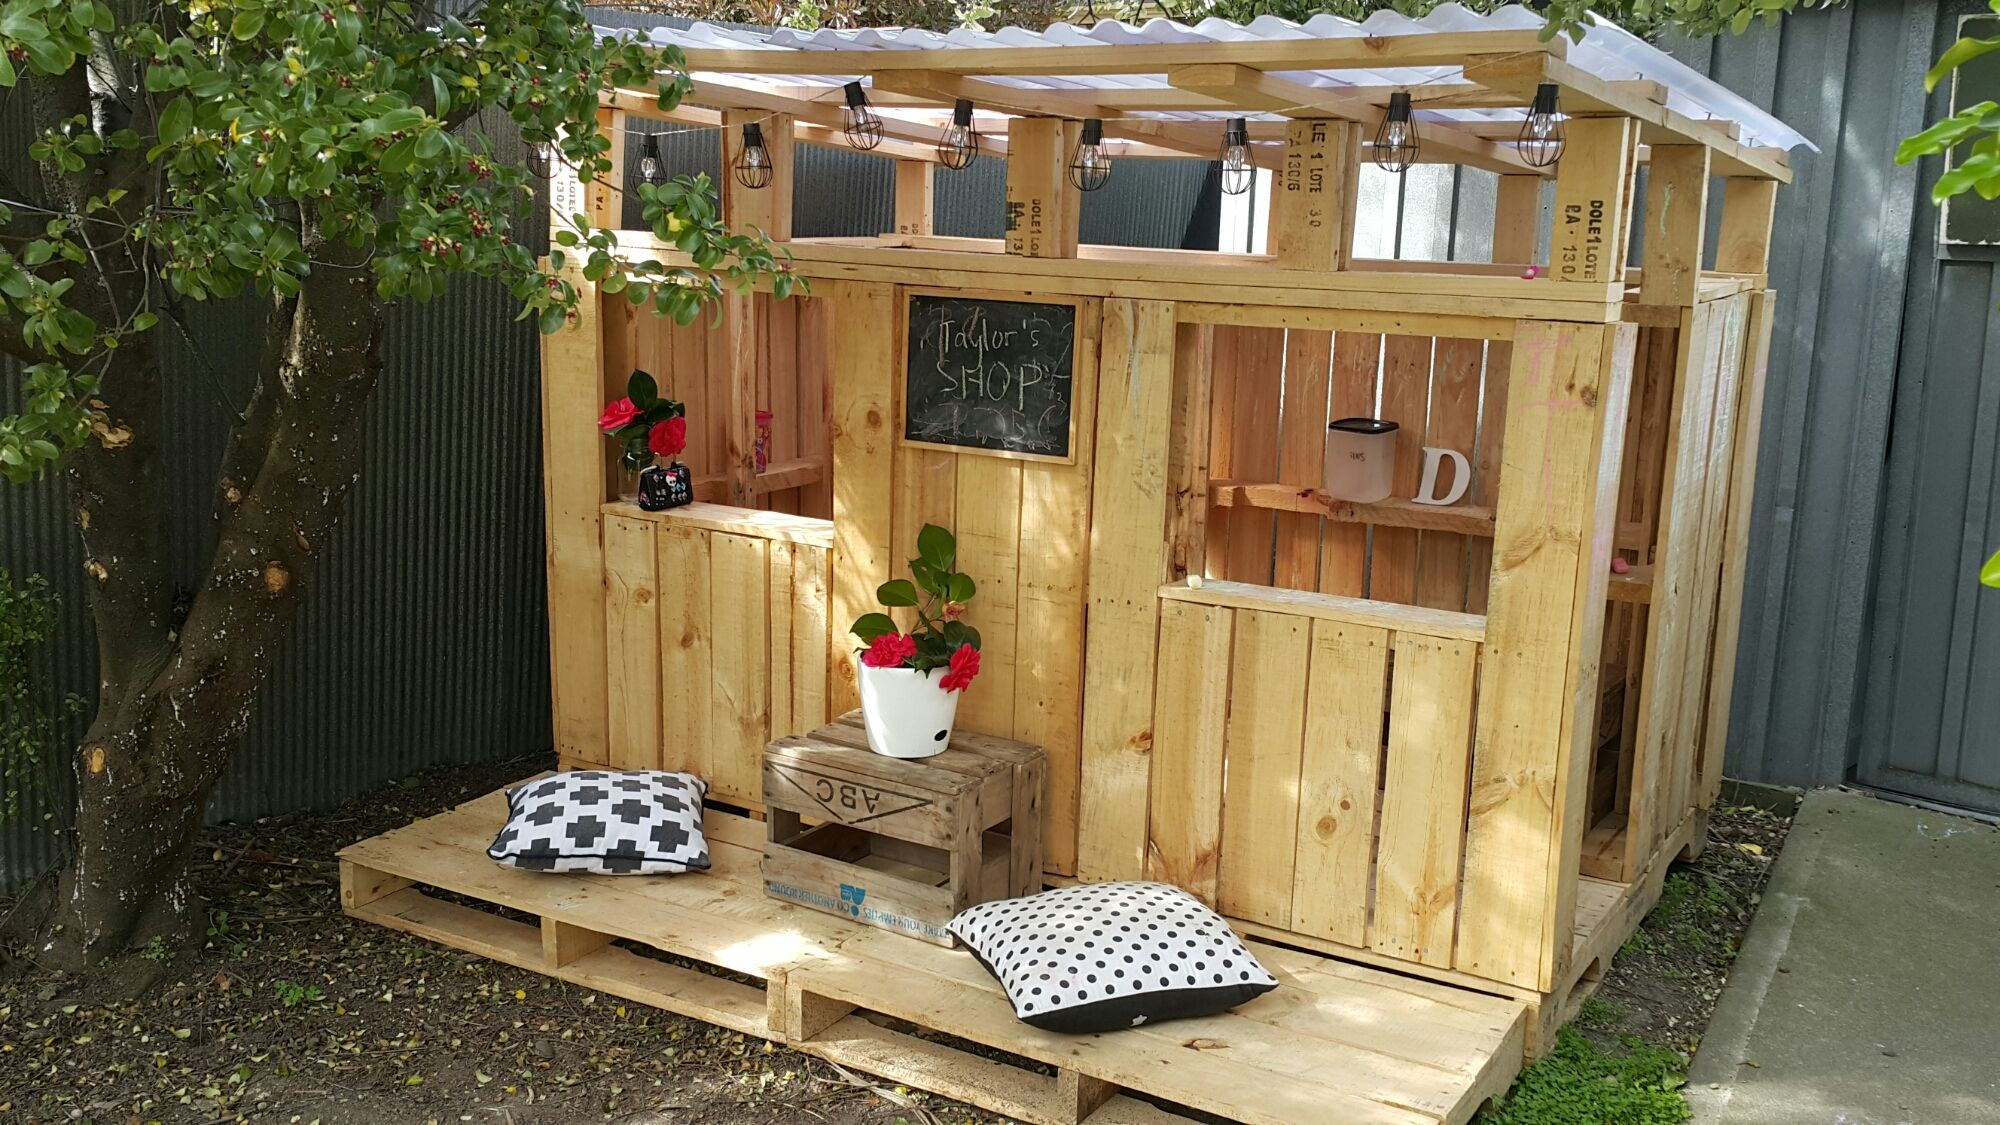 Our d i y pallet playhouse simplicity me how to build for How to make a playhouse out of wood